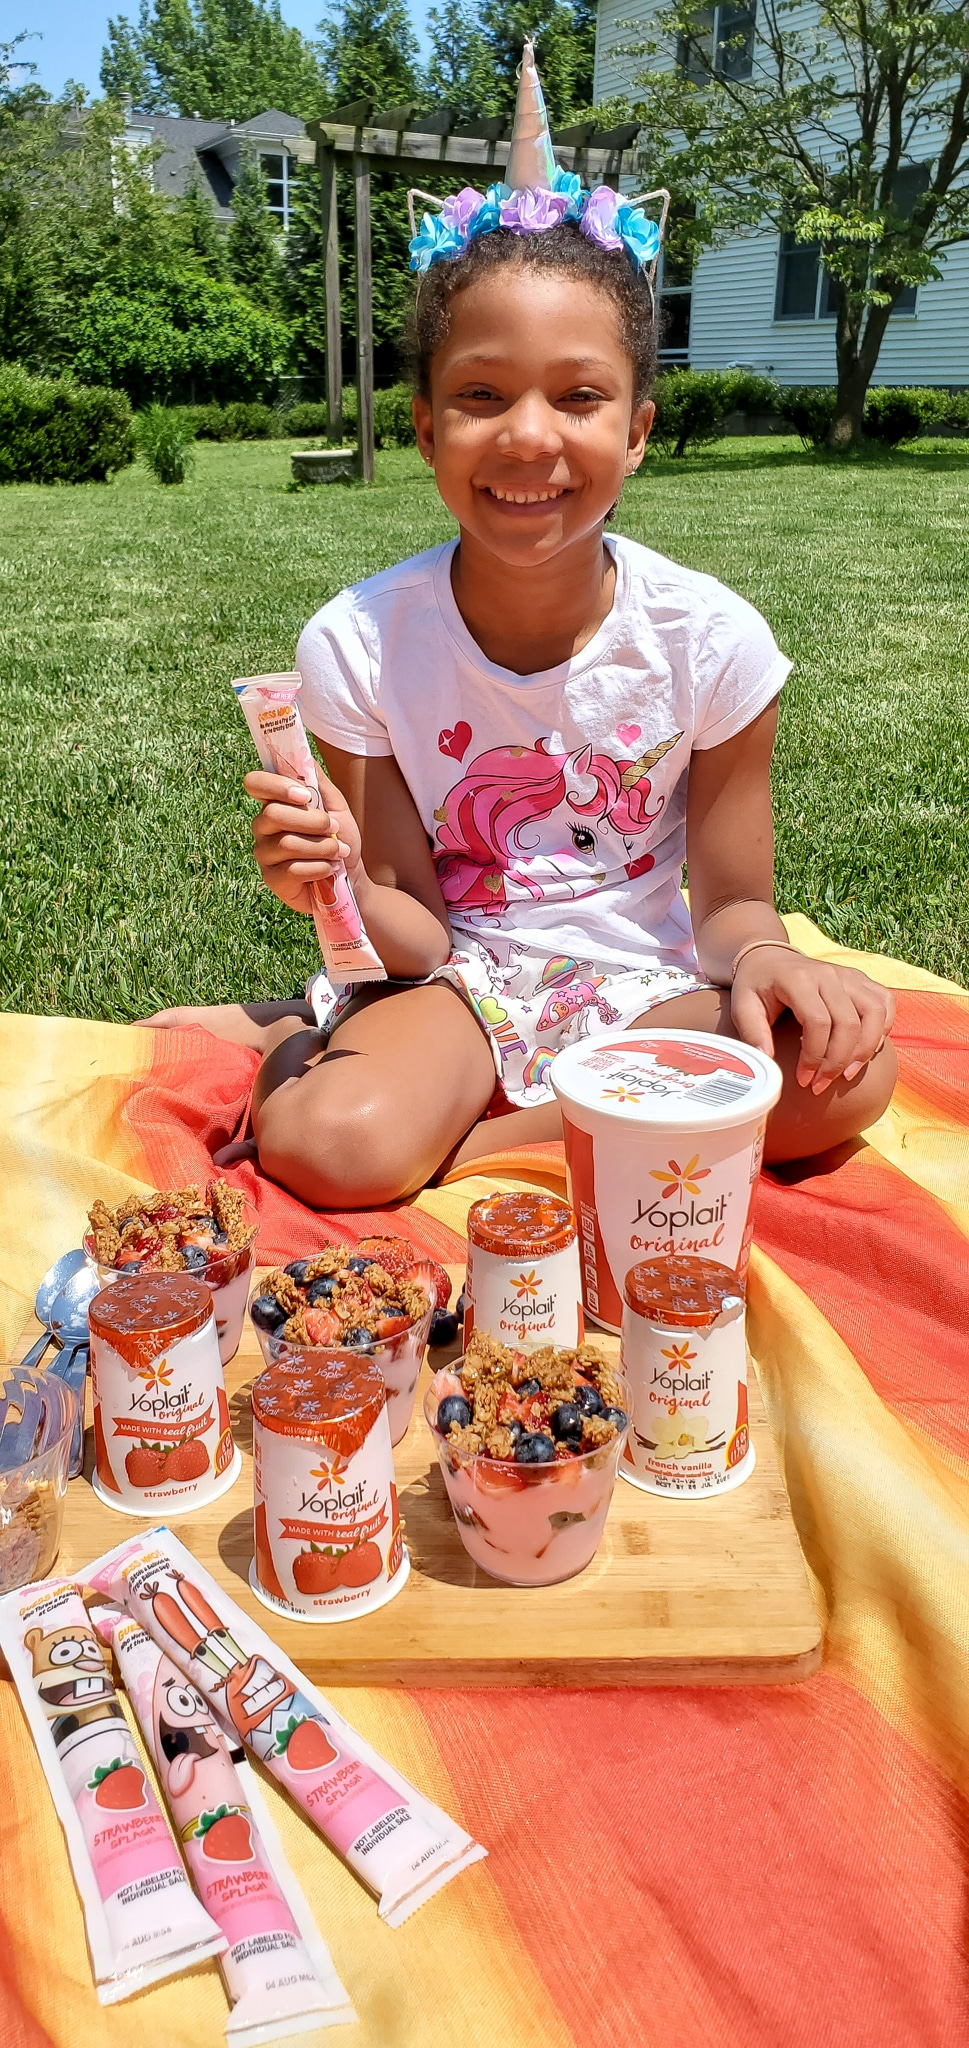 Backyard Picnic with Yoplait Esuun. Grab your picnic baskets! It's time to host your very own backyard picnic featuring the foods your family loves. No need to leave home for this bunch of fun, just pick a date and then prep your picnic baskets.